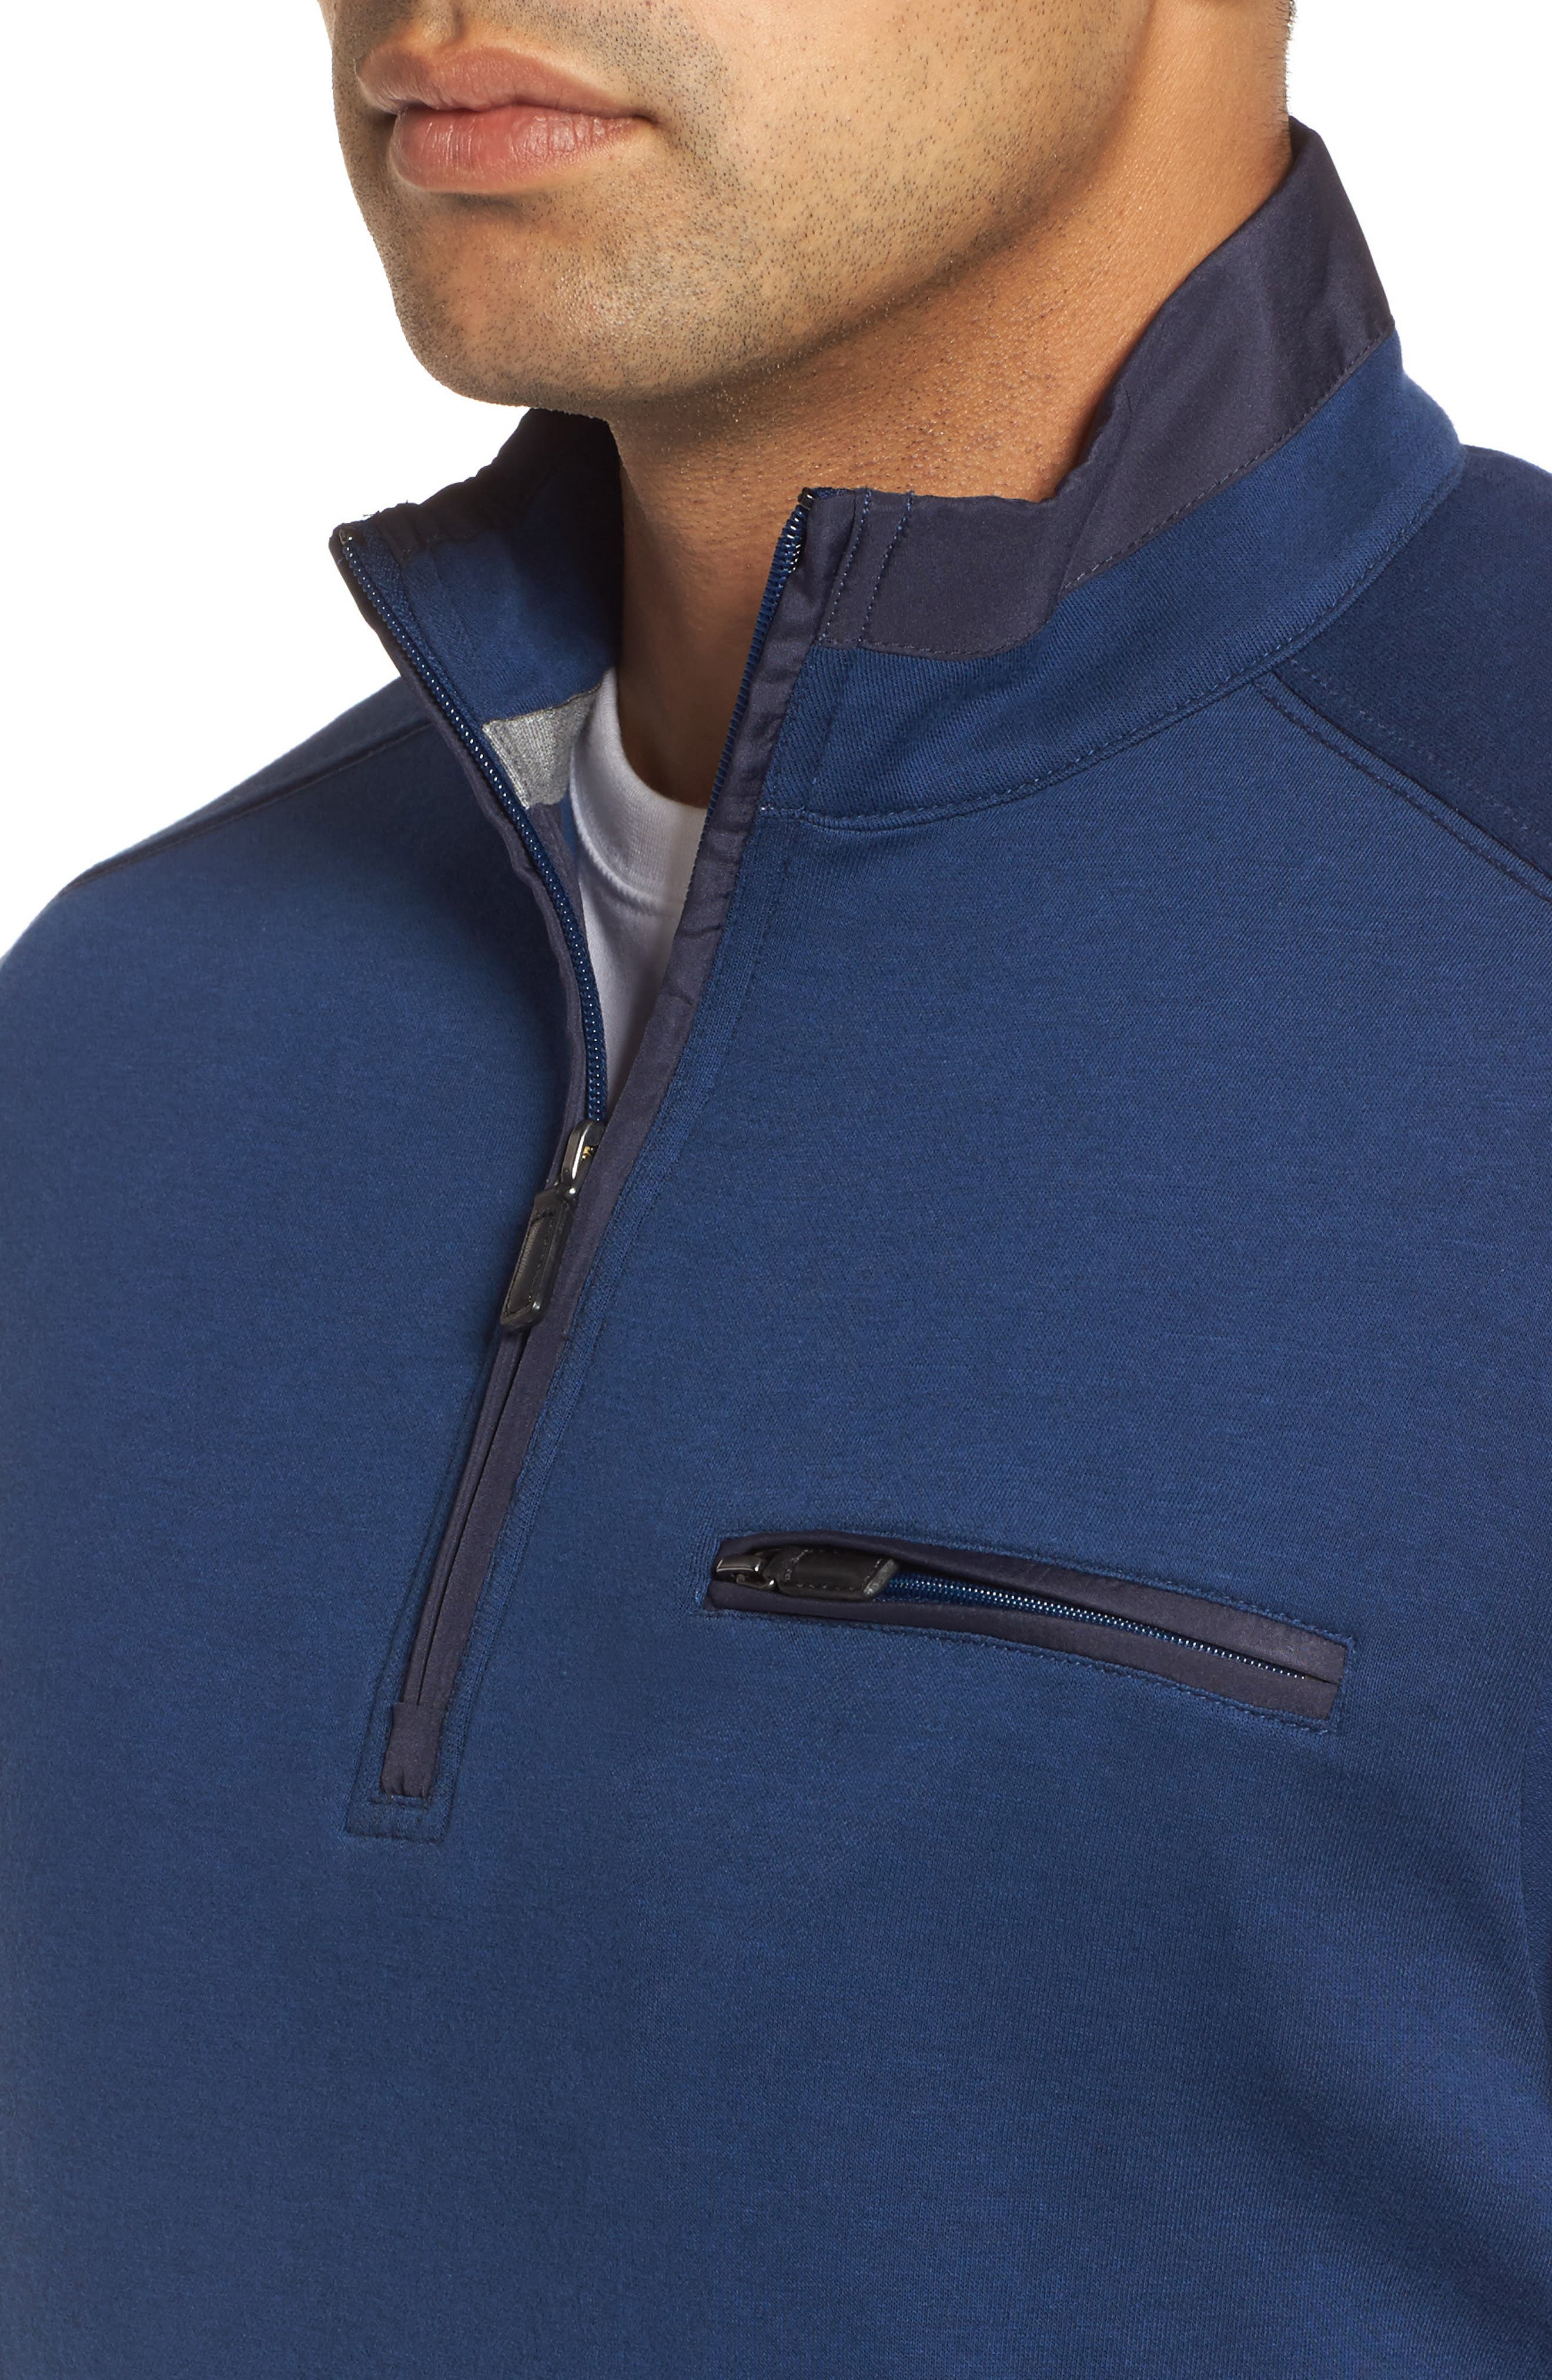 Classic Fit Solid Quarter Zip Pullover,                             Alternate thumbnail 4, color,                             Navy